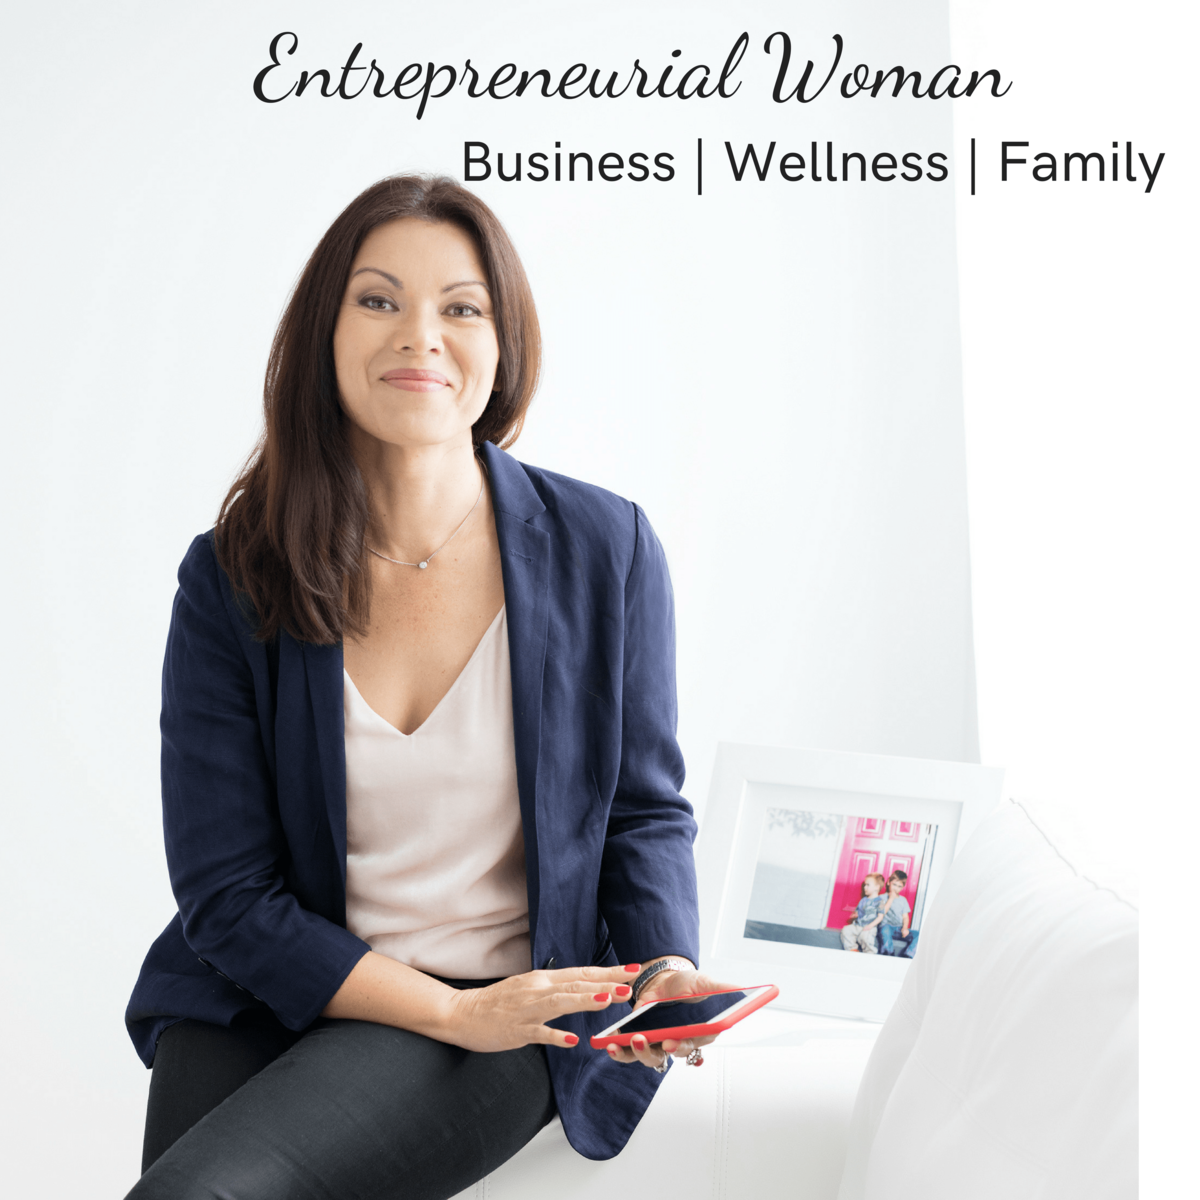 Entrepreneurial woman Podcast logo 3000 x 3000-min